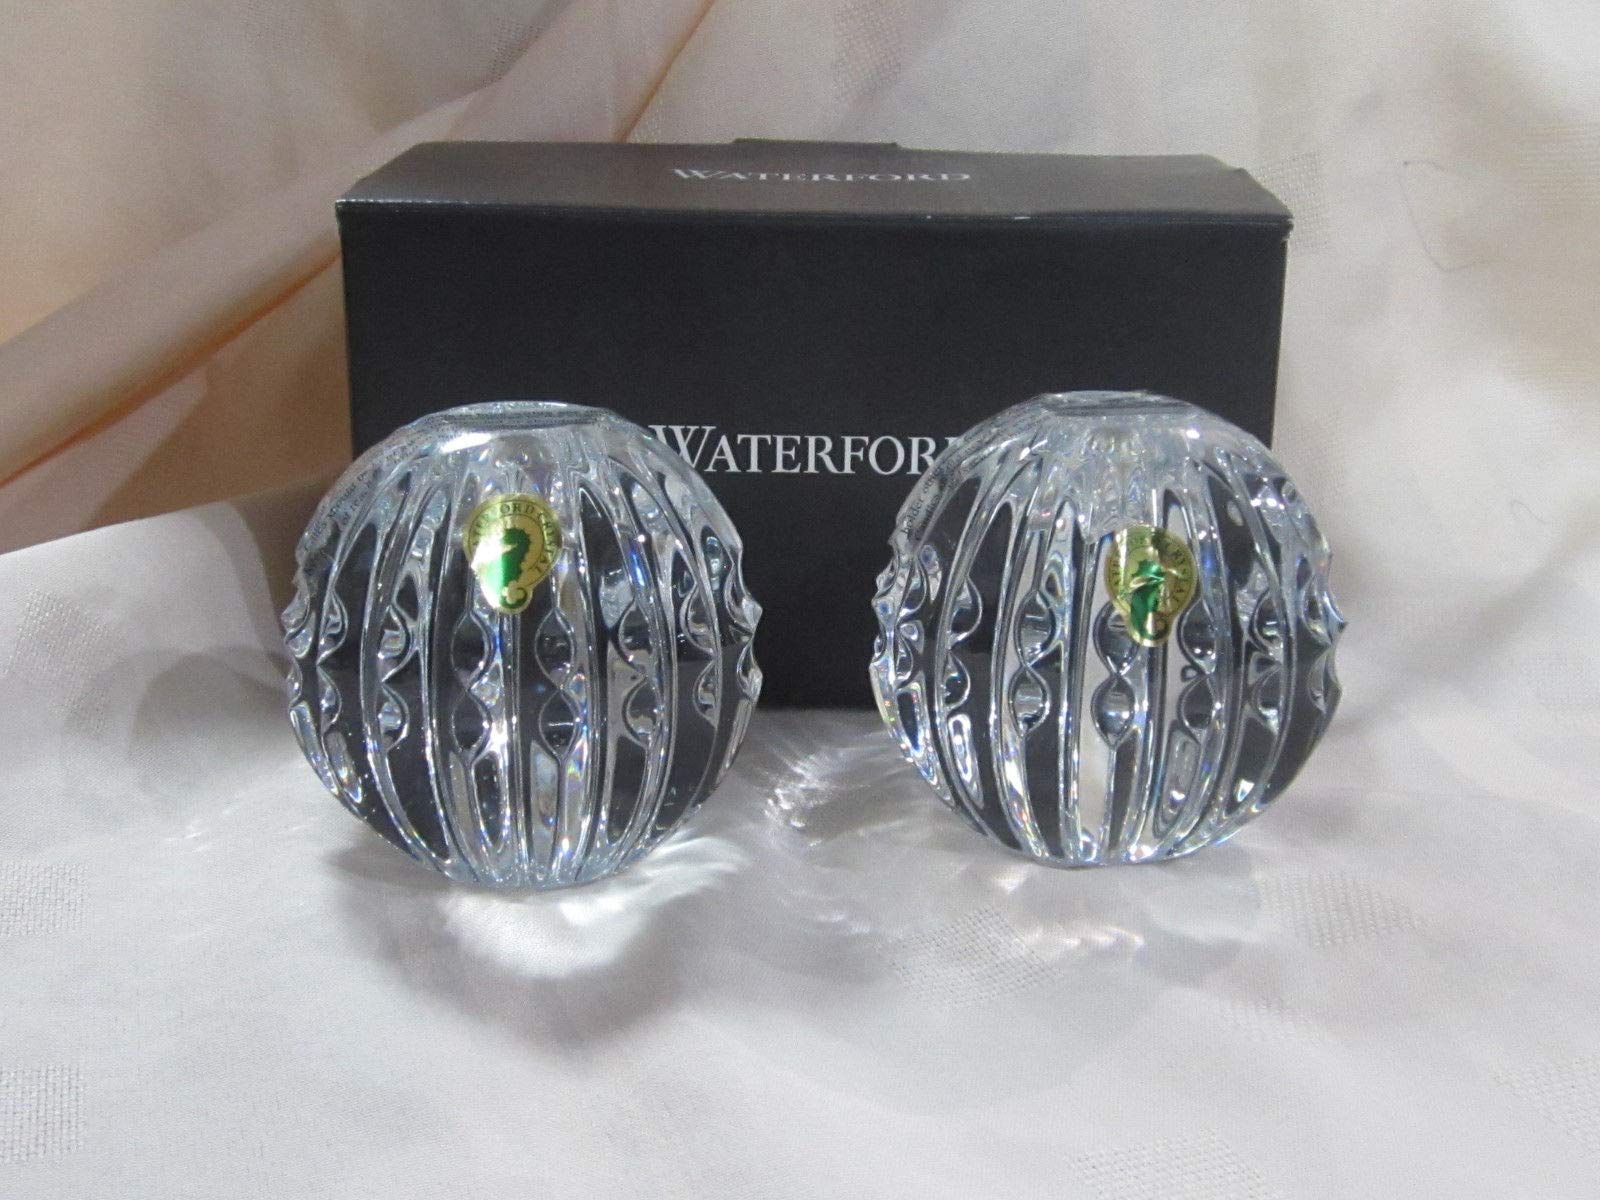 Waterford Crystal Heritage Ball Candlestick Holder Set of 2#40034814